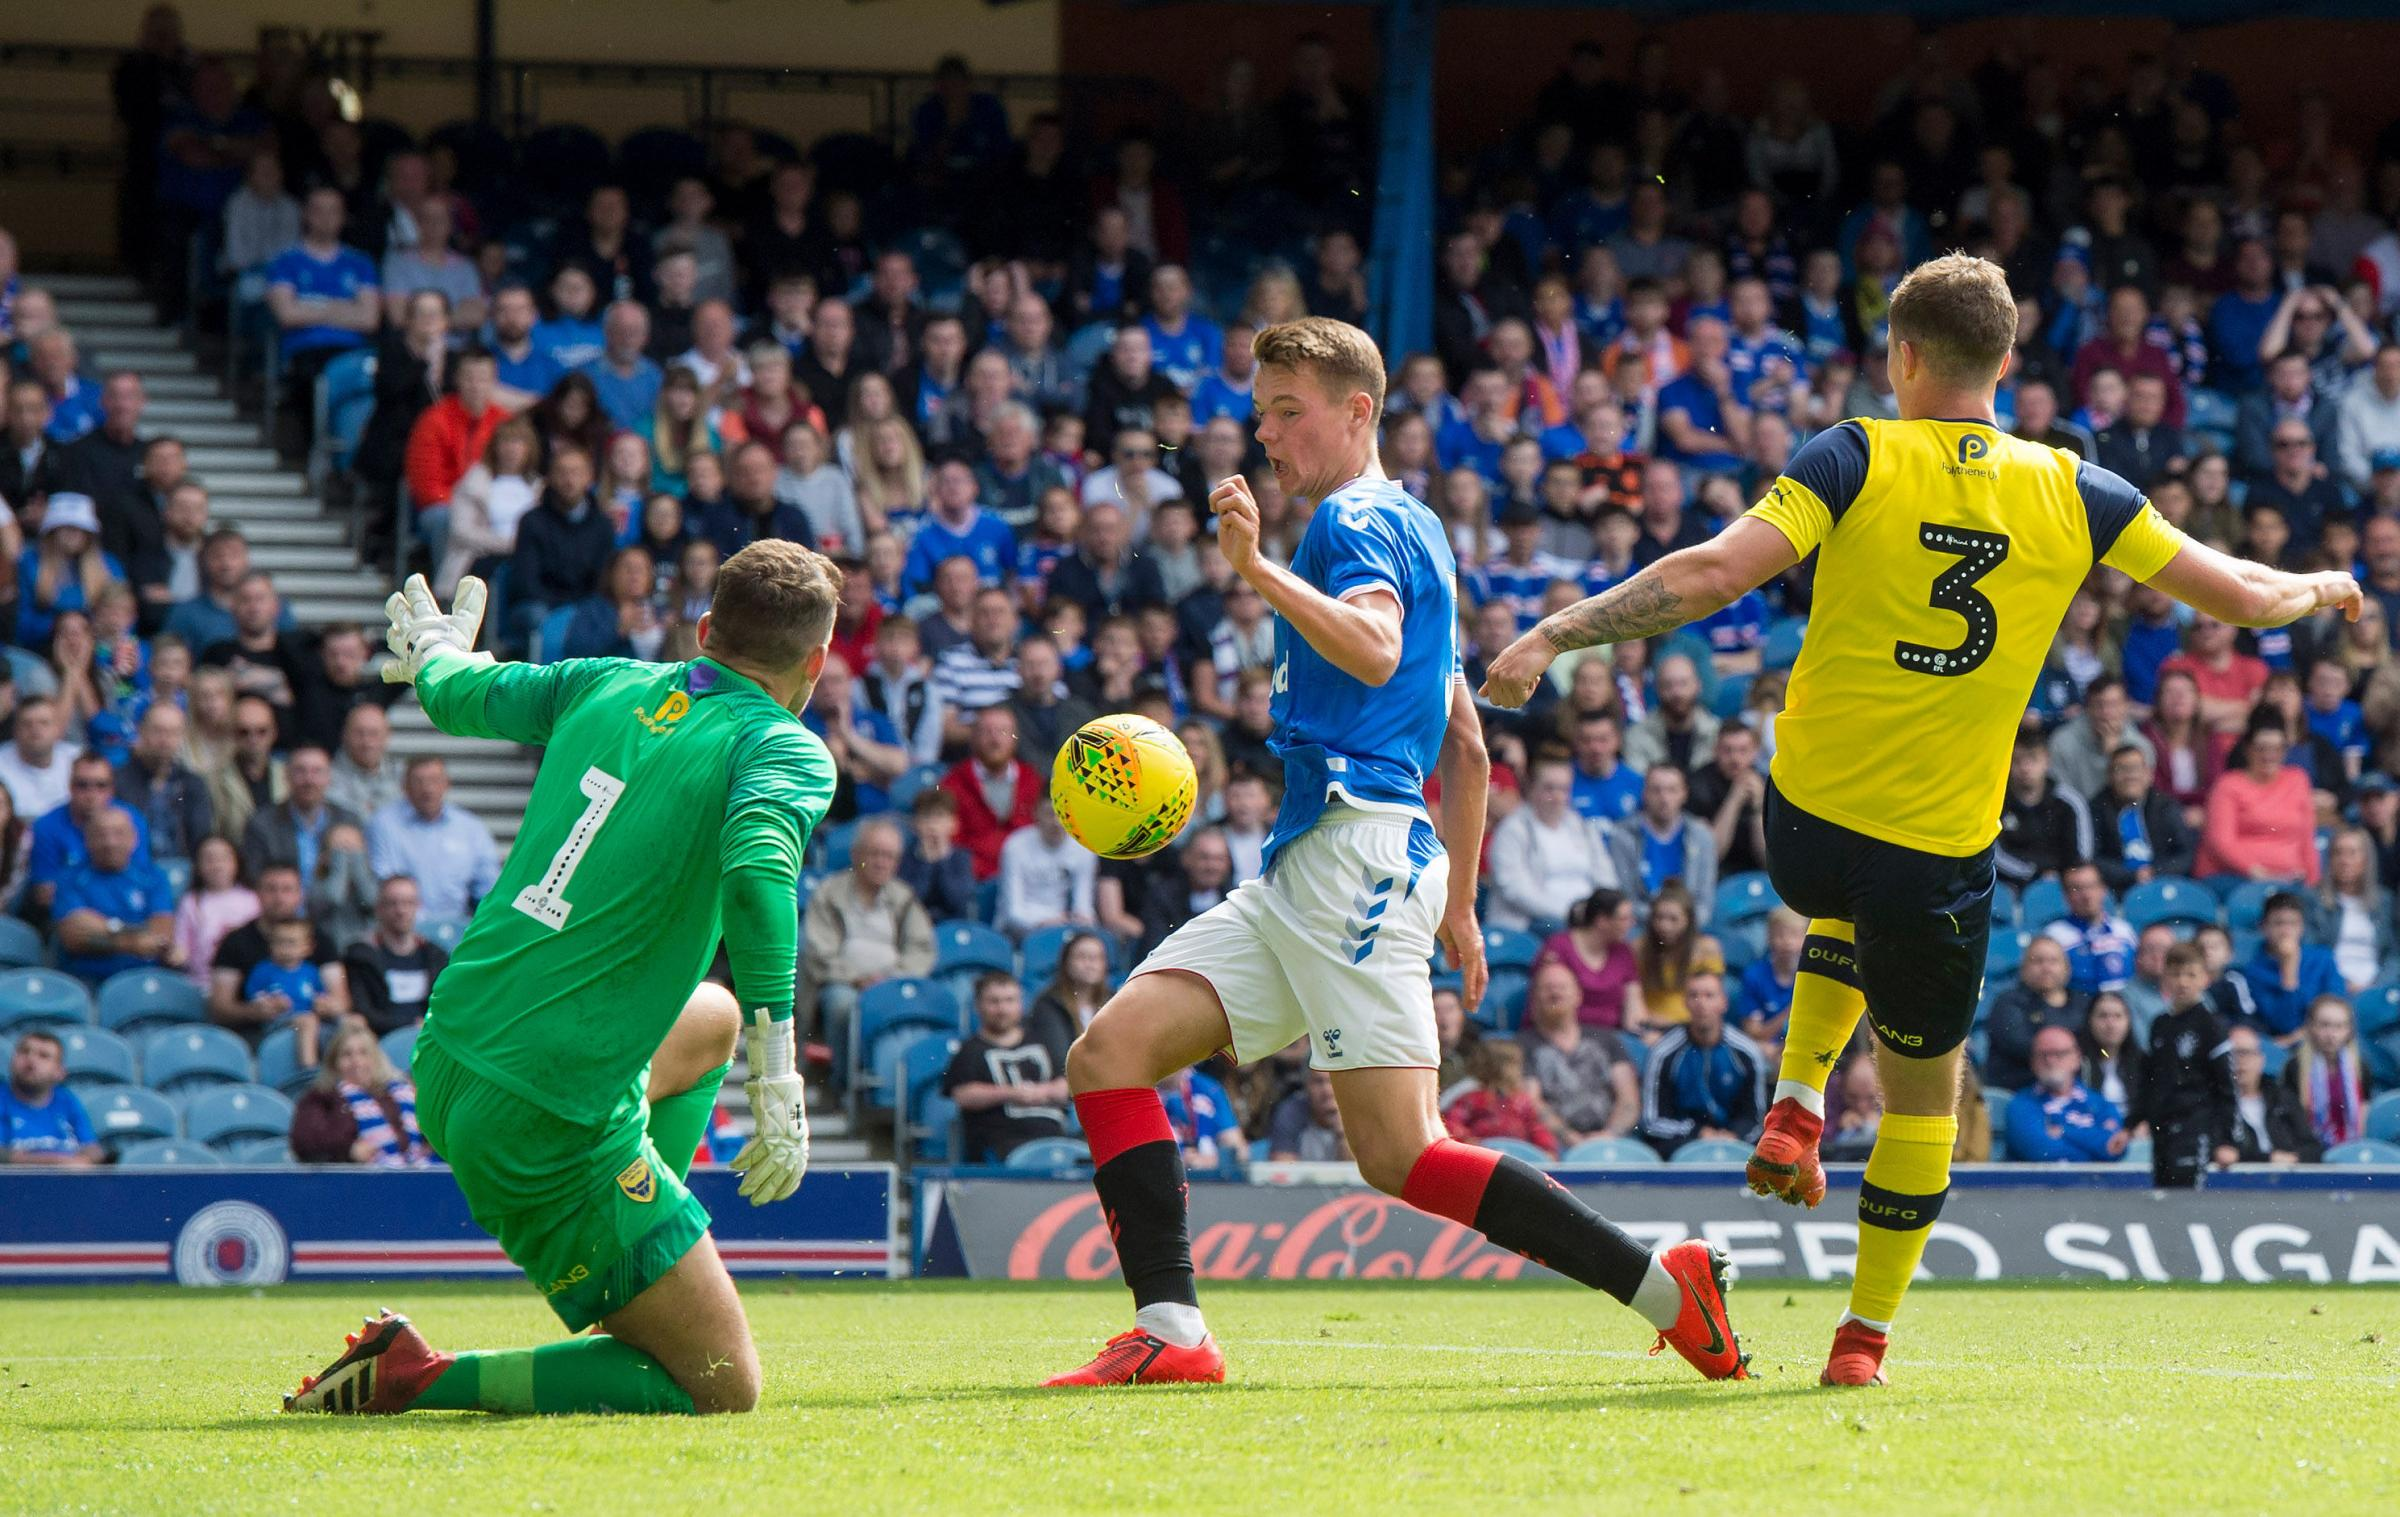 Partick Thistle want Rangers defender Lewis Mayo on loan